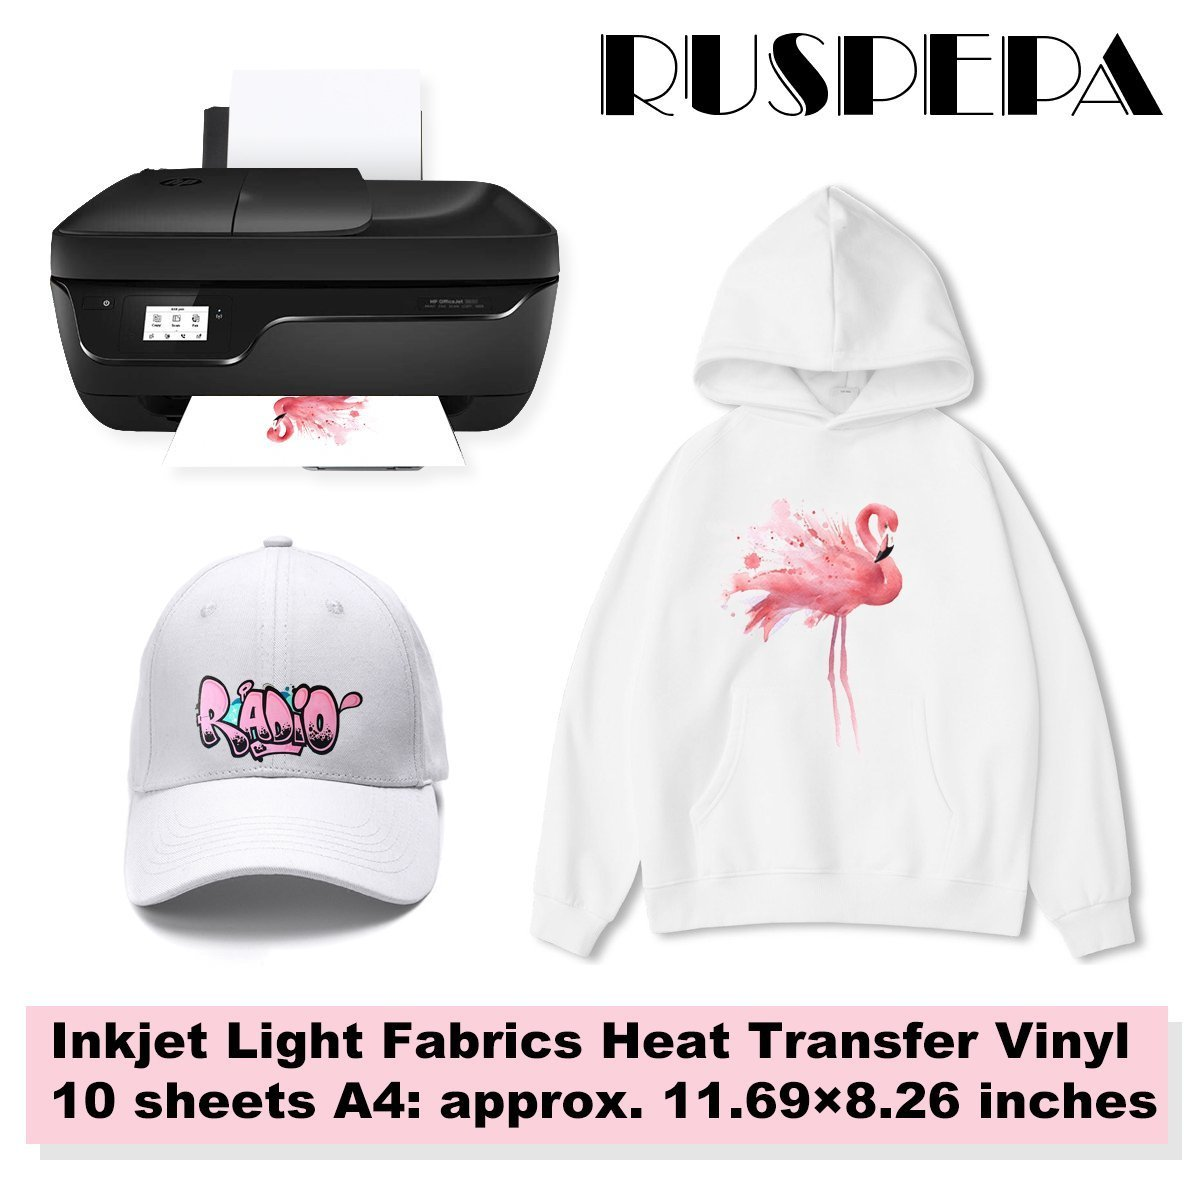 RUSPEPA 11.69 x 8.26 inches Inkjet Printable Transfer Paper Iron-On Light Fabrics Heat Transfer Vinyl A4 Sheet for T-shirts, Bag, Hats and Clothes, 10 Sheets